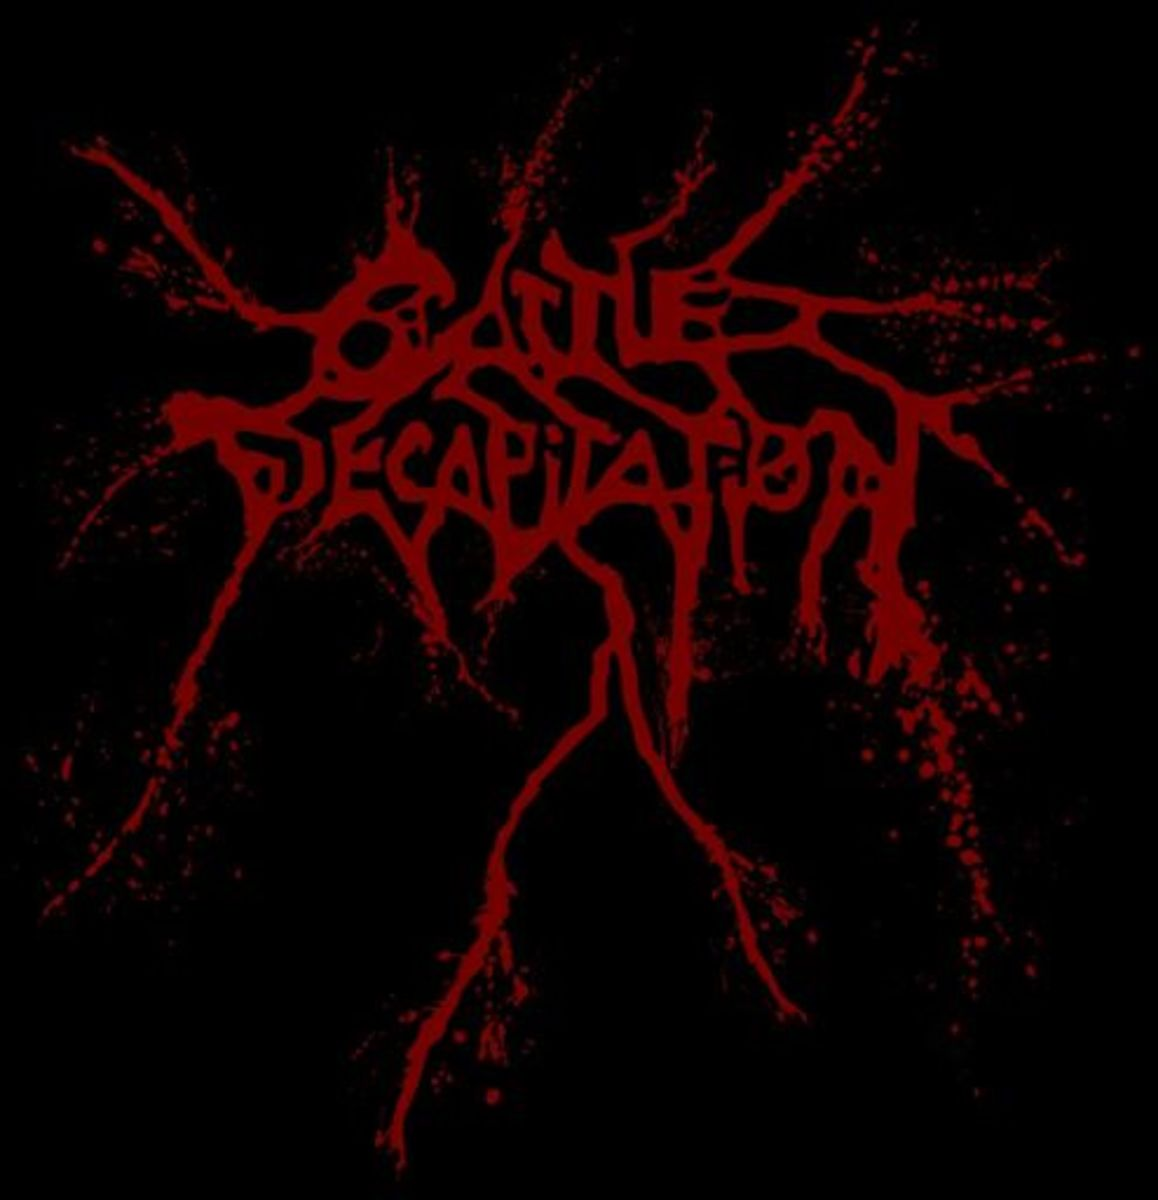 logo for death metal band, Cattle Decapitation